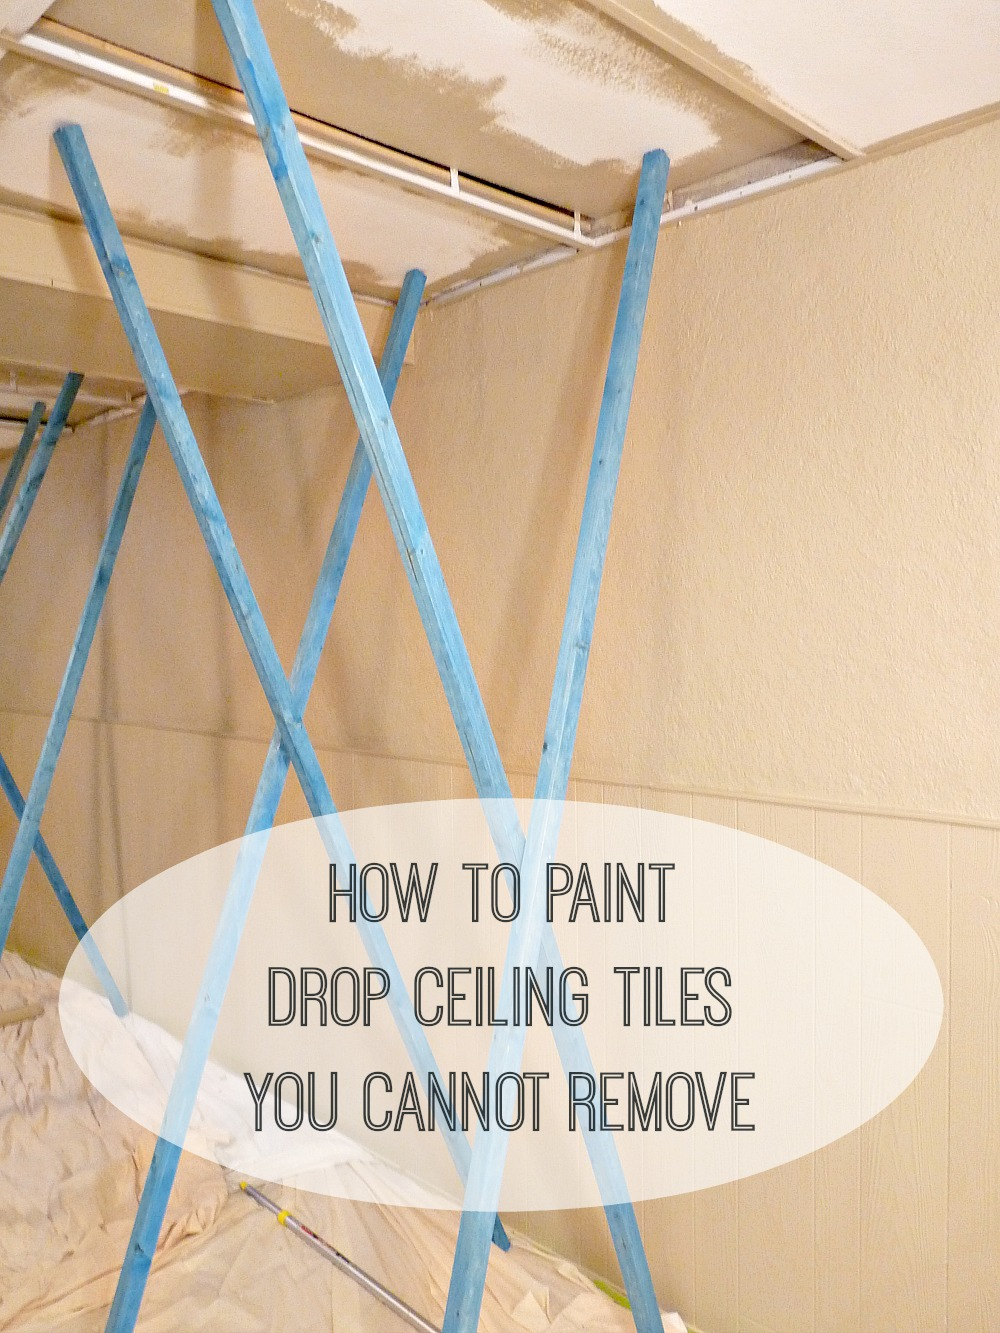 Basement update how to paint drop ceilings you cannot remove quick tip for painting ceiling tiles you cannot remove dailygadgetfo Images